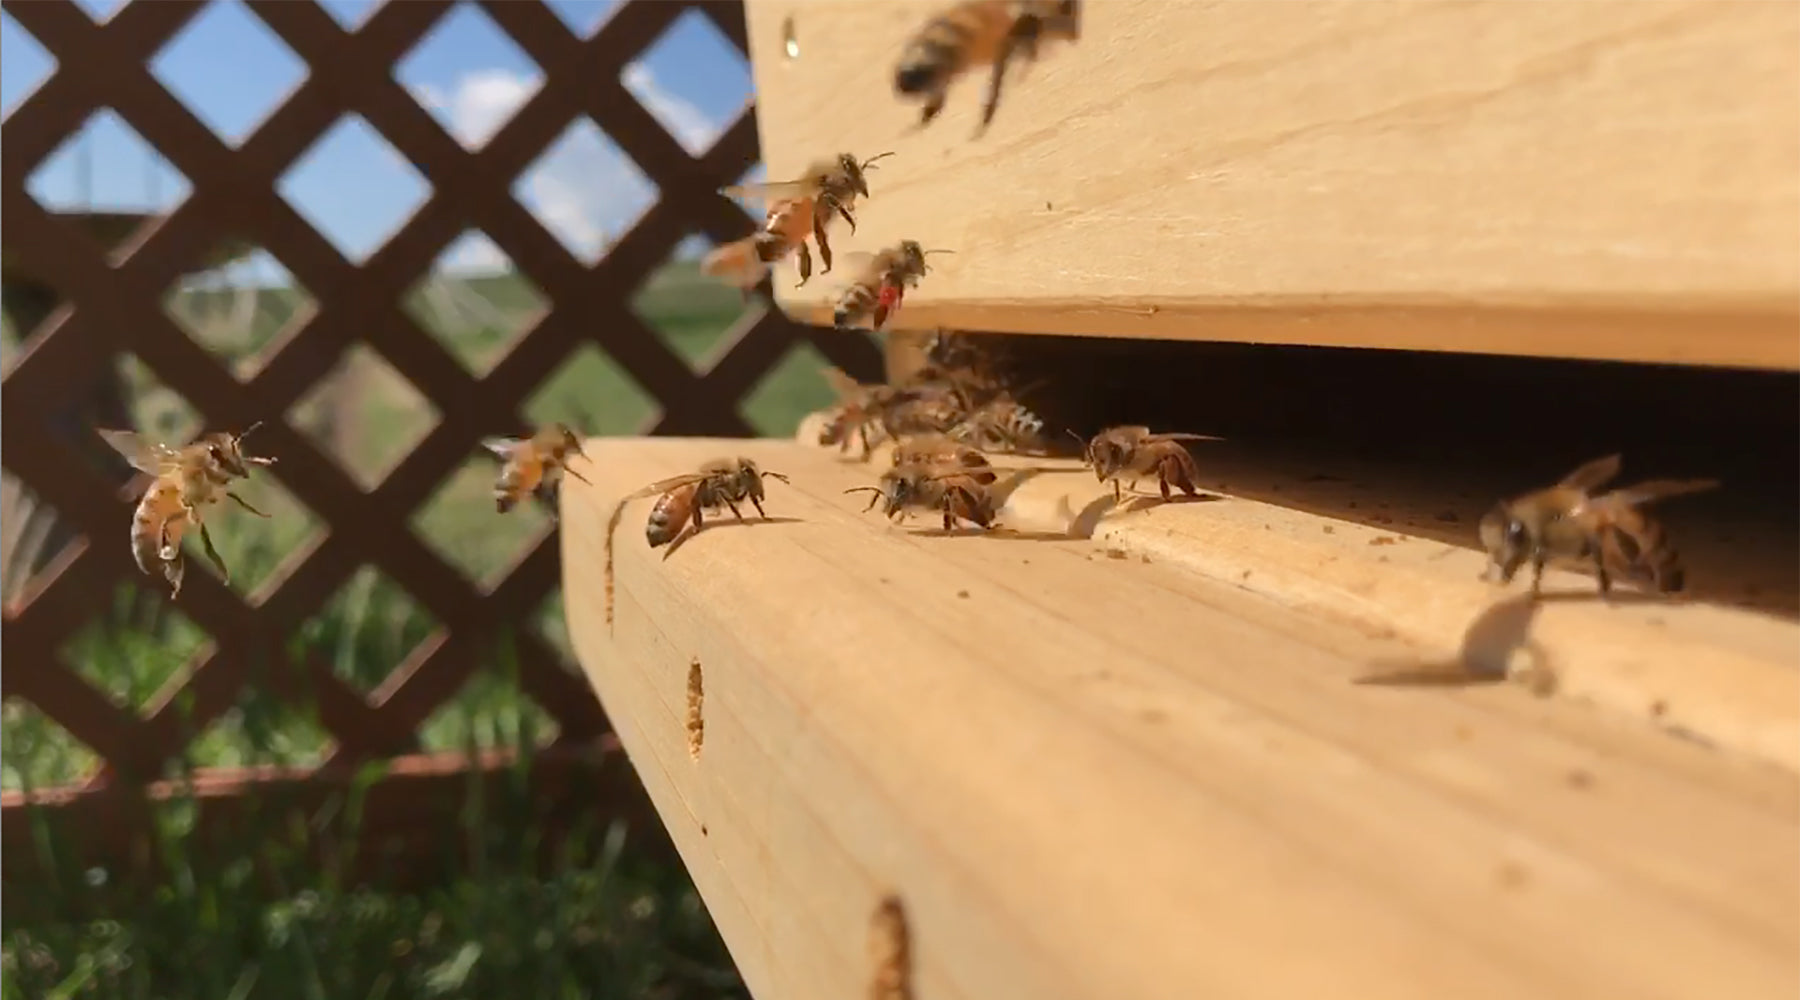 What are the types of bees in a colony or bee hive